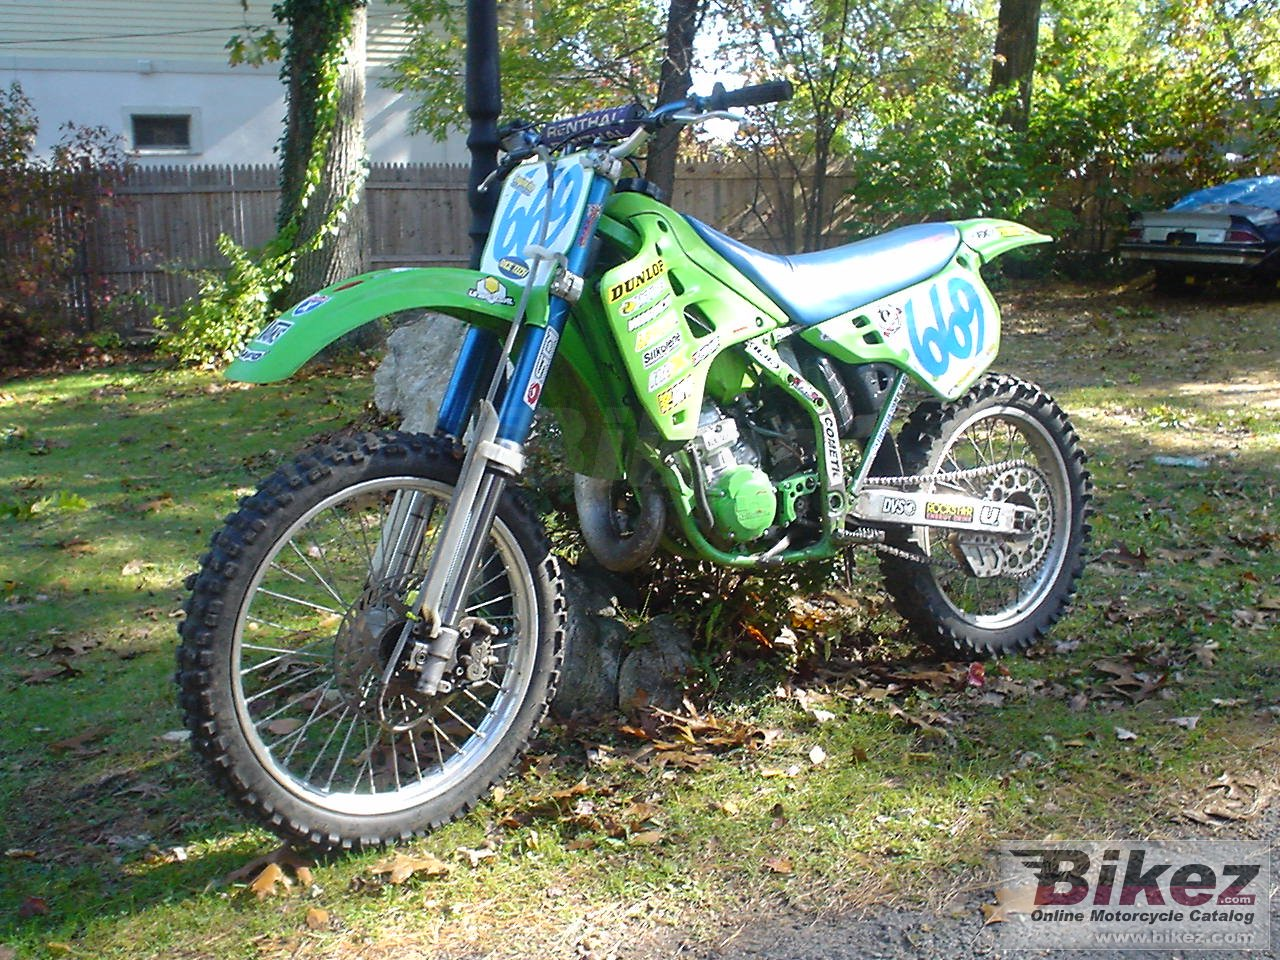 Big  kx 125 picture and wallpaper from Bikez.com